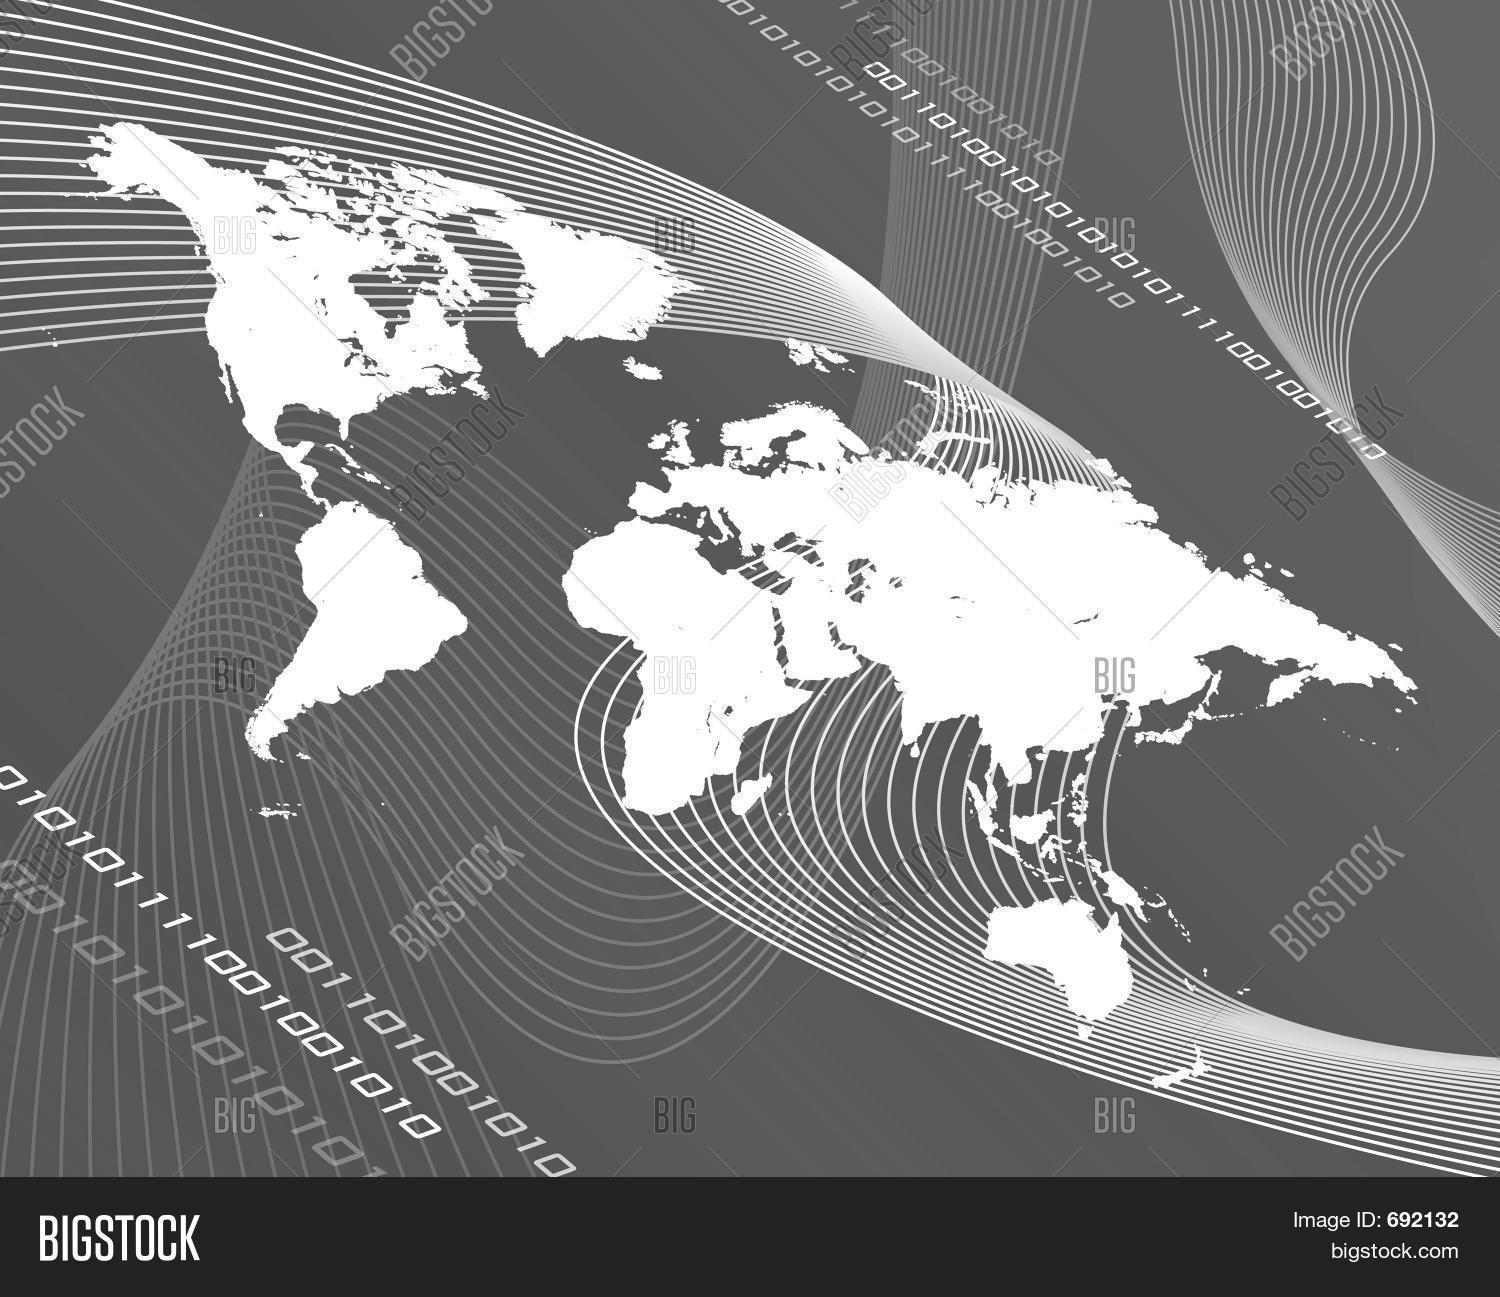 Grayscale world map image photo free trial bigstock grayscale world map gumiabroncs Gallery